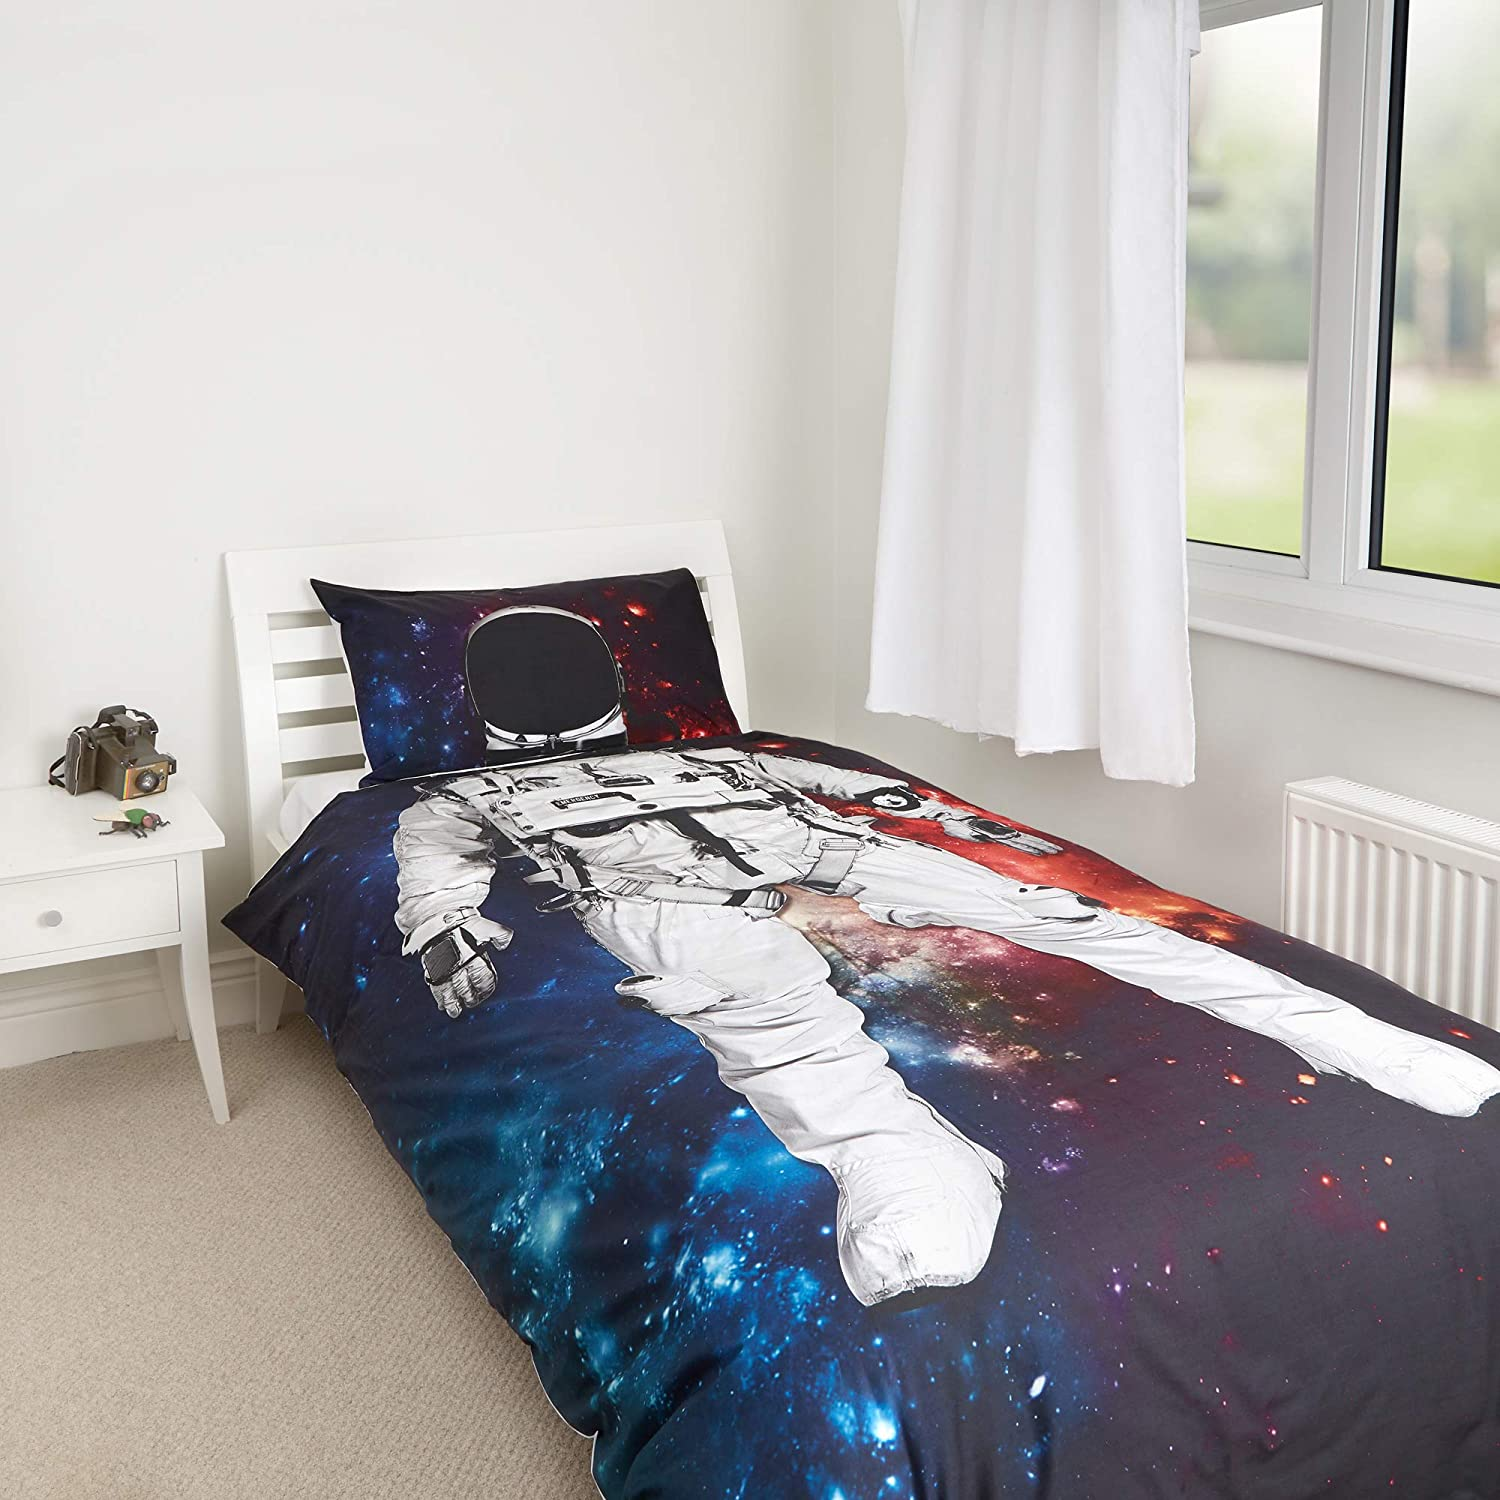 Zappi Co Character Design by The Gift Scholars Be who you want to be with these Single Duvets; Princess or Astronaut Boys /& Girls Single Duvet set W matching pillow case Astronaut